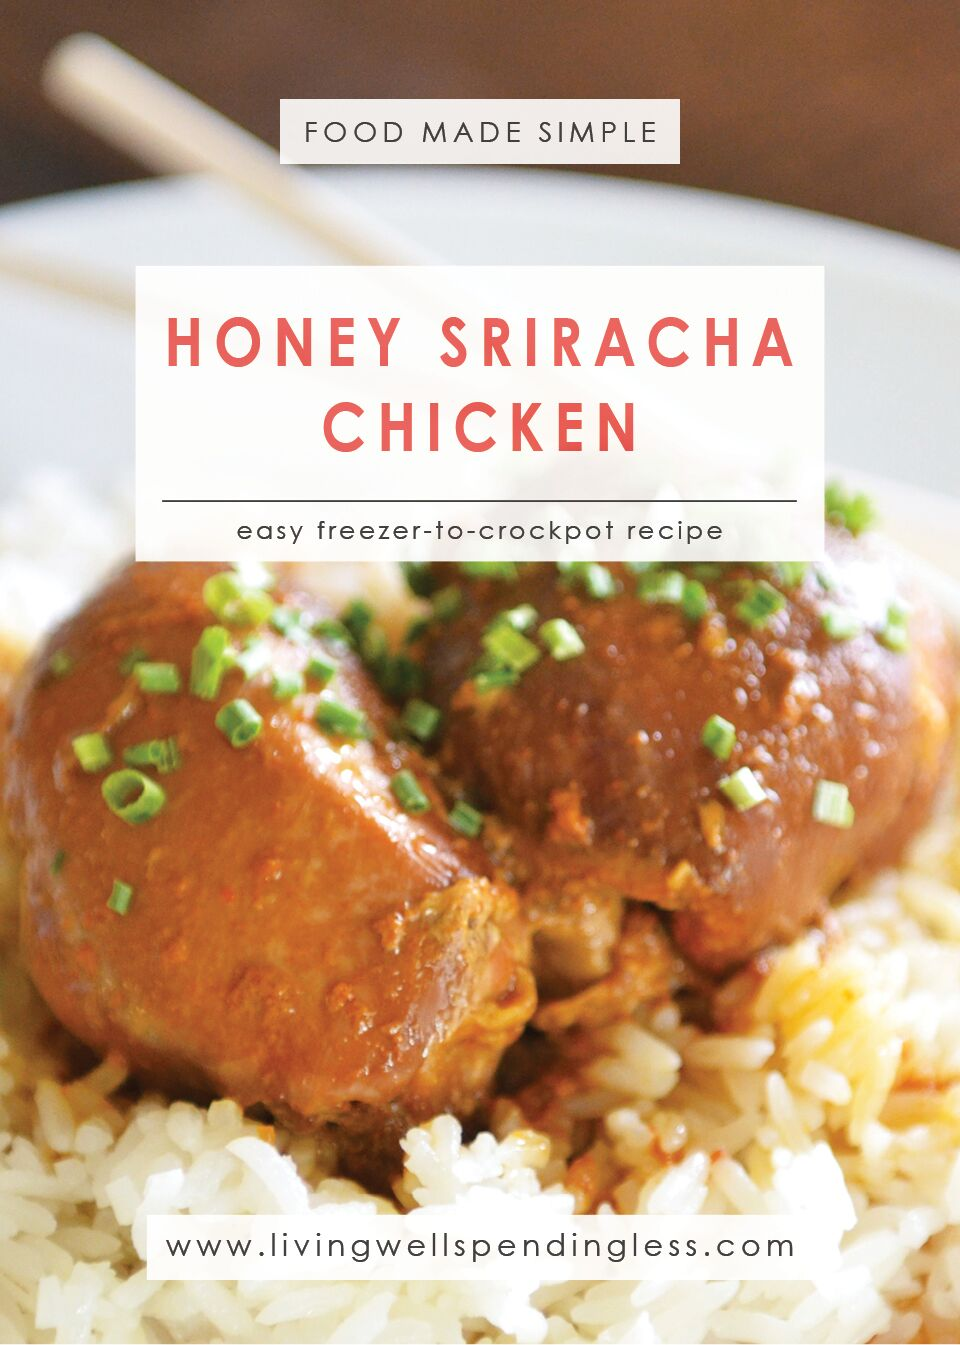 Honey Sriracha Chicken | 10 Meals in an Hour | Food Made Simple | Freezer Cooking | Main Course Meat | Chicken Recipes